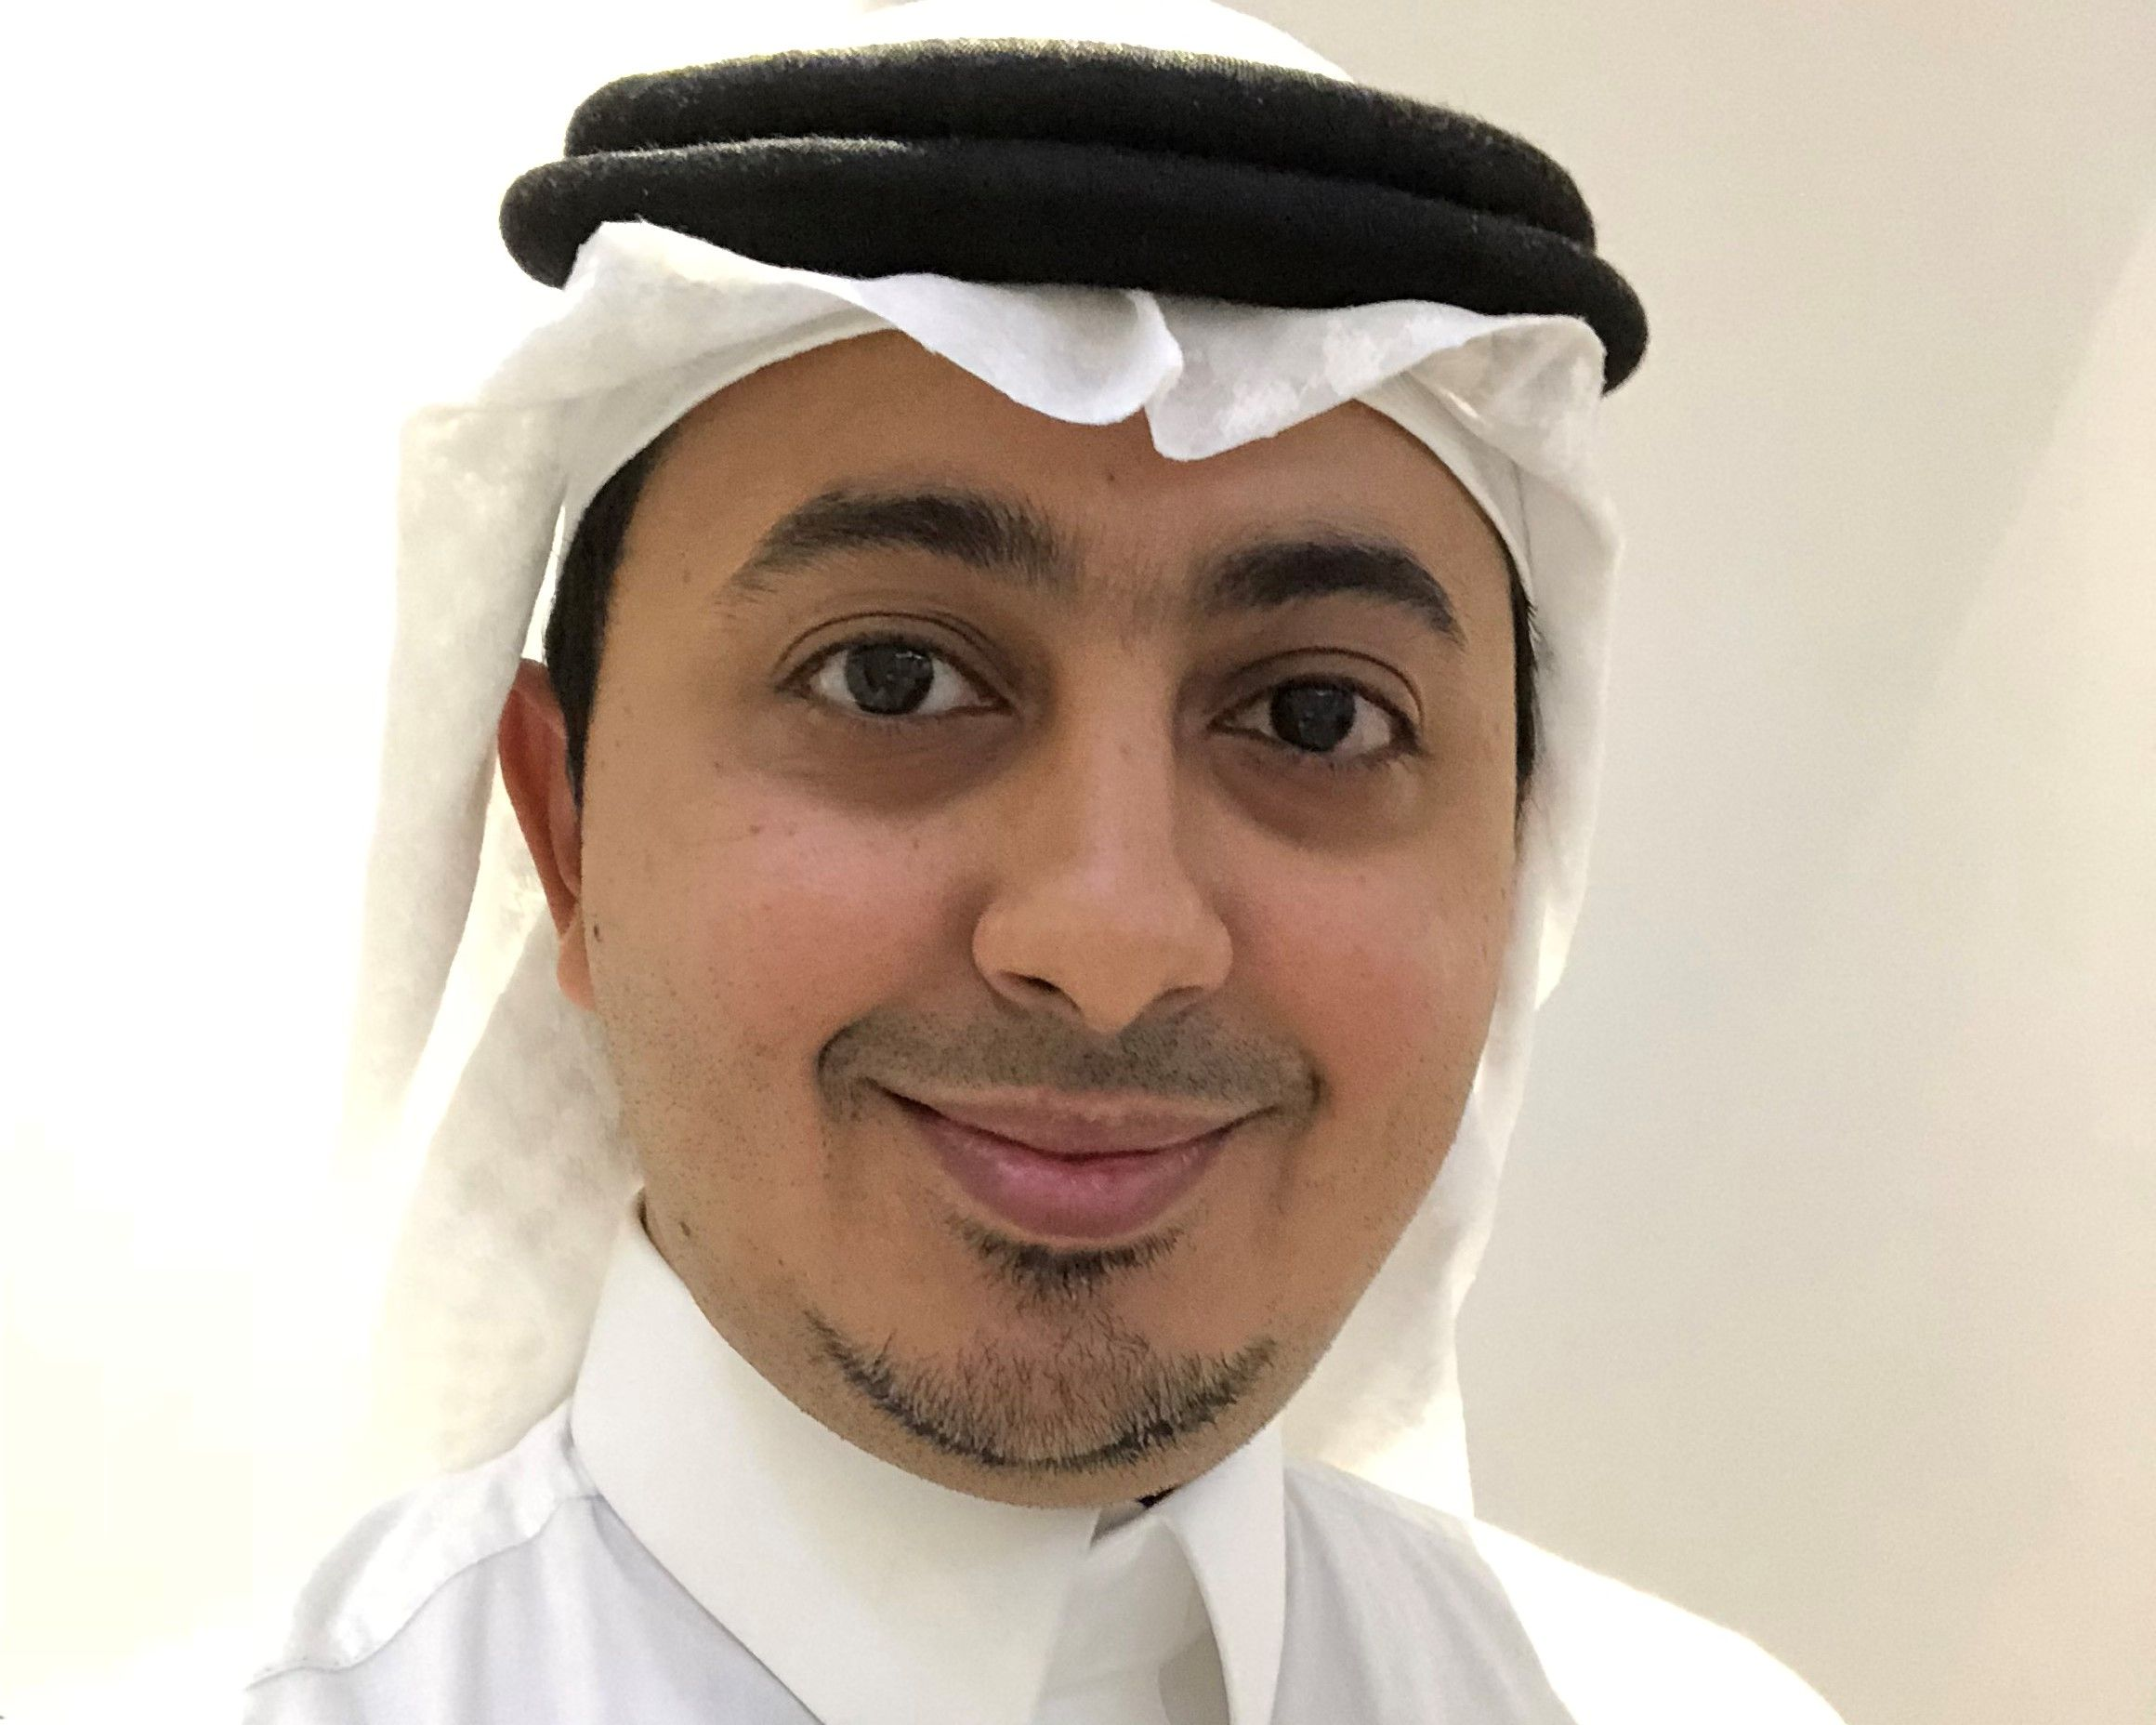 In conversation with Ammar Waganah of Saudi Arabia's Dokkan Afkar